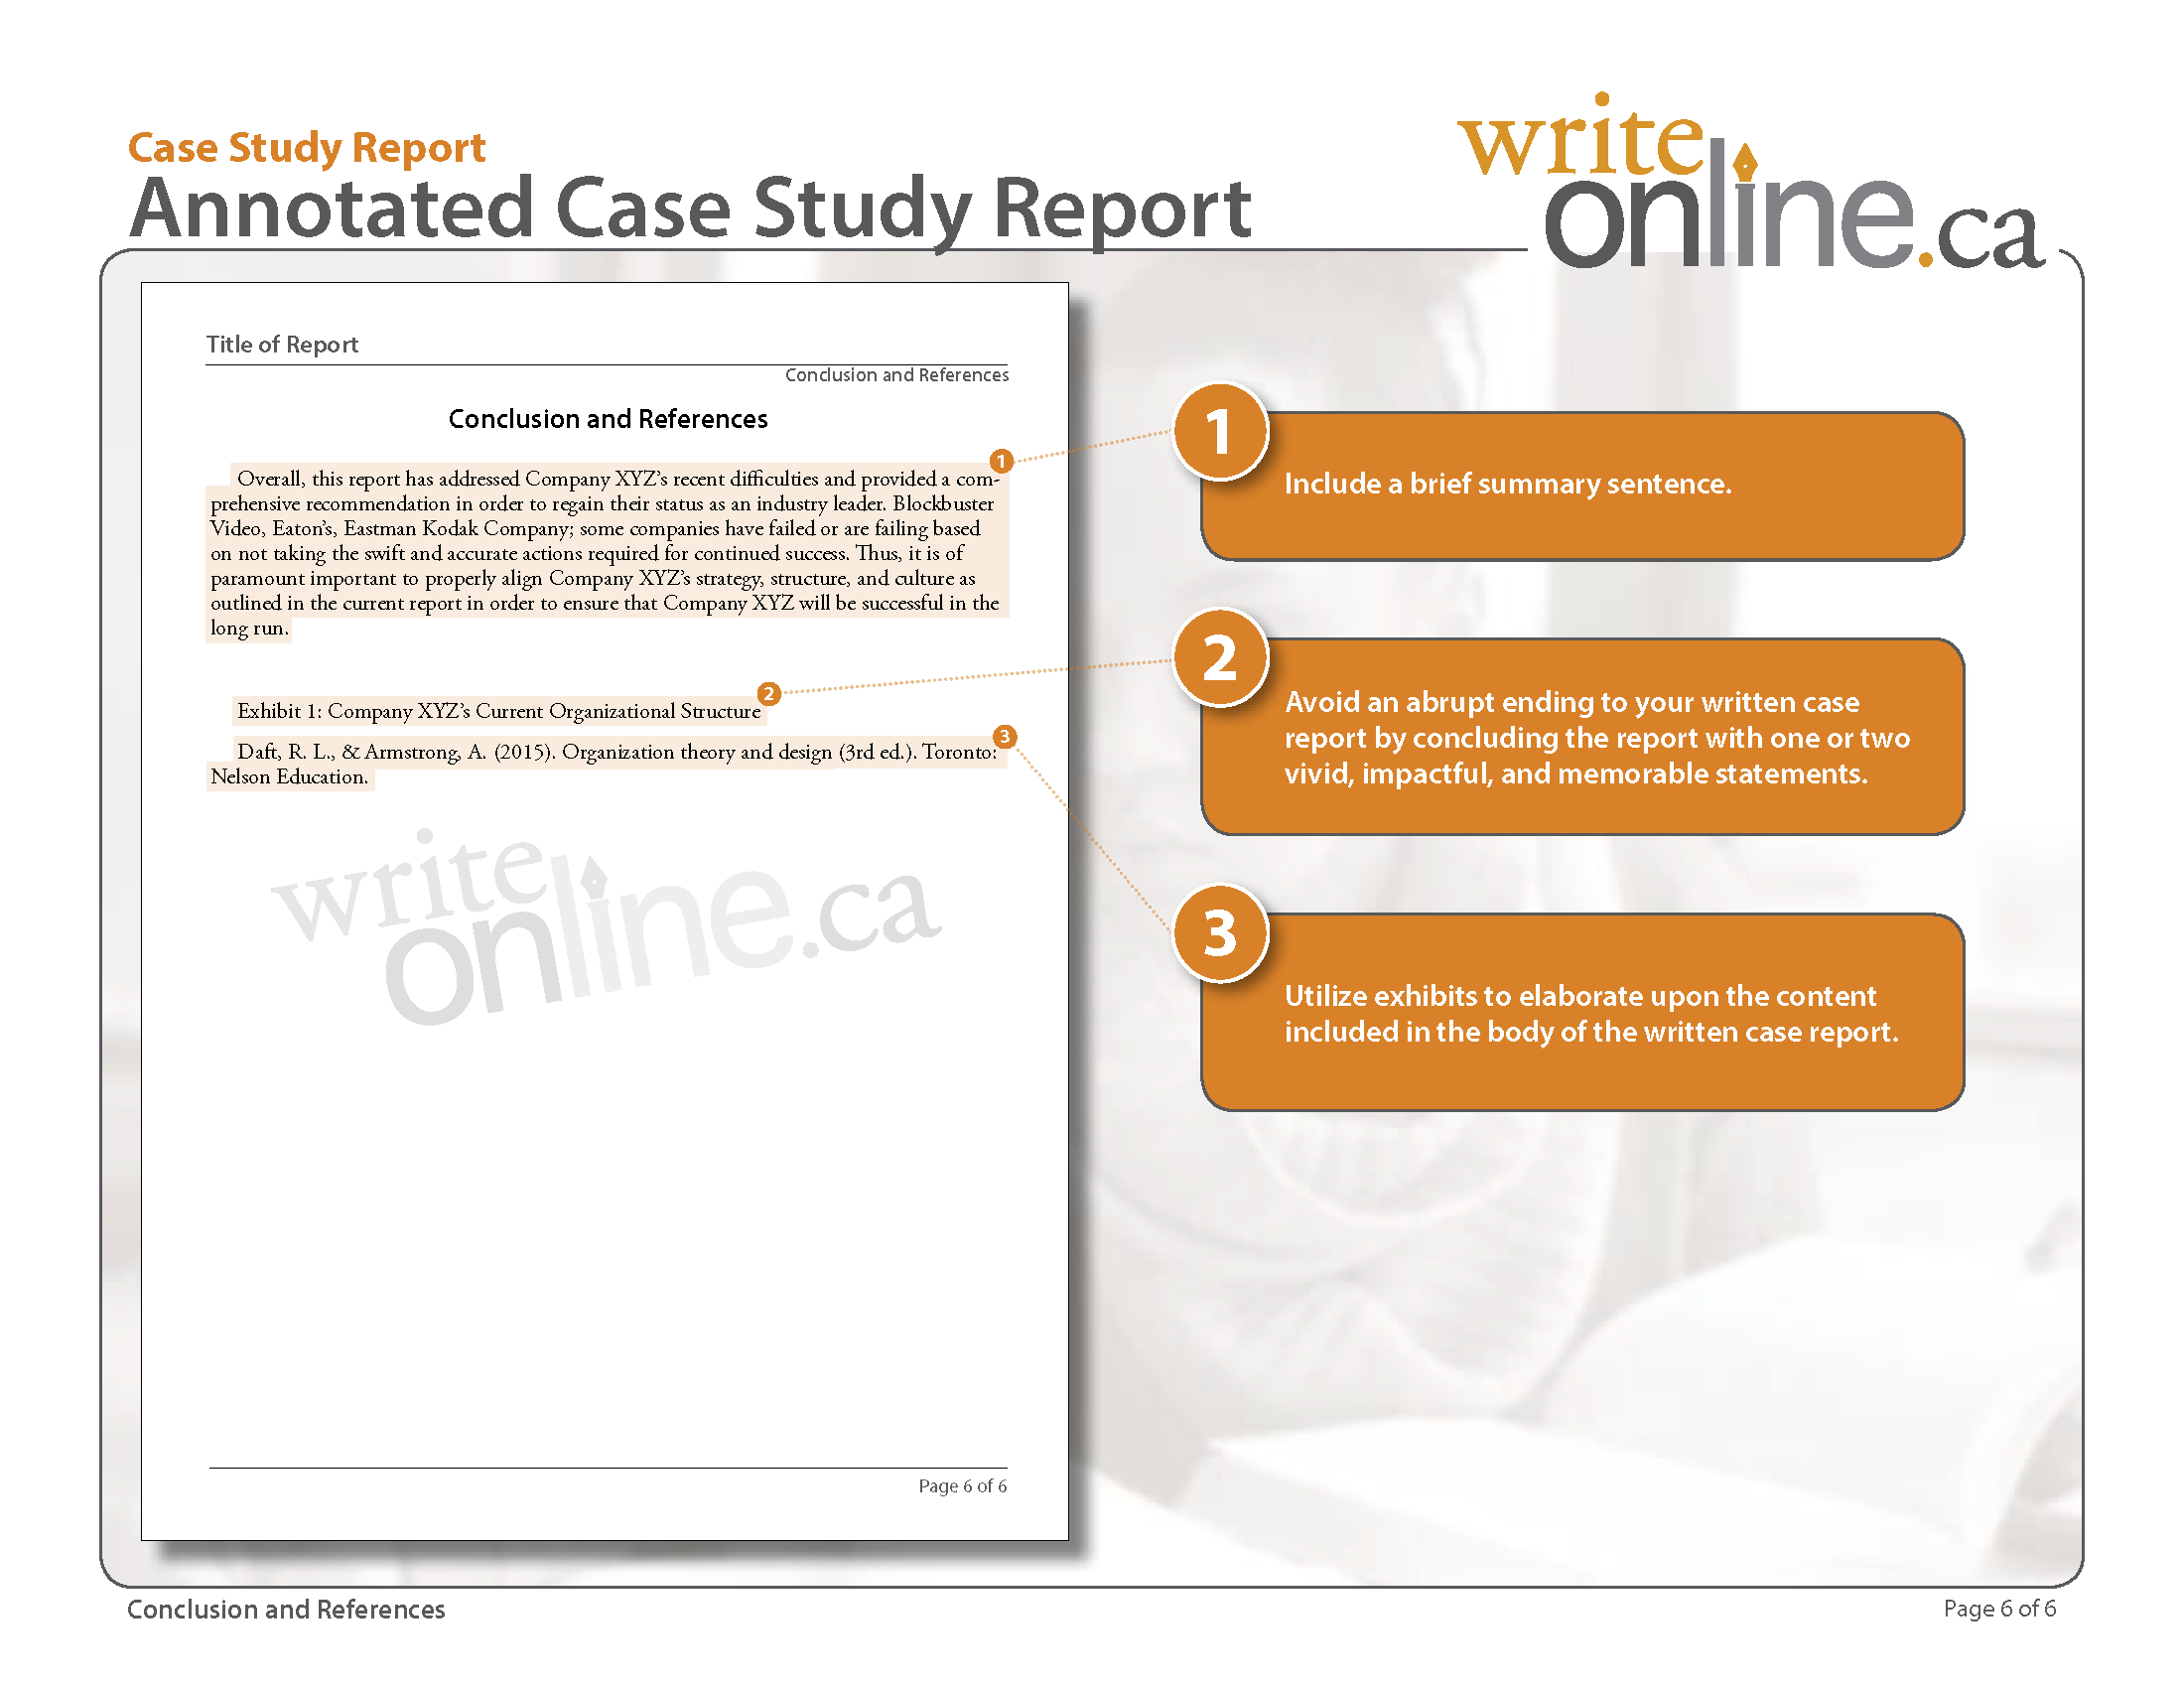 010 Parts Of Research Paper And Its Definition Pdf Casestudy Annotatedfull Page 6 Staggering A Full